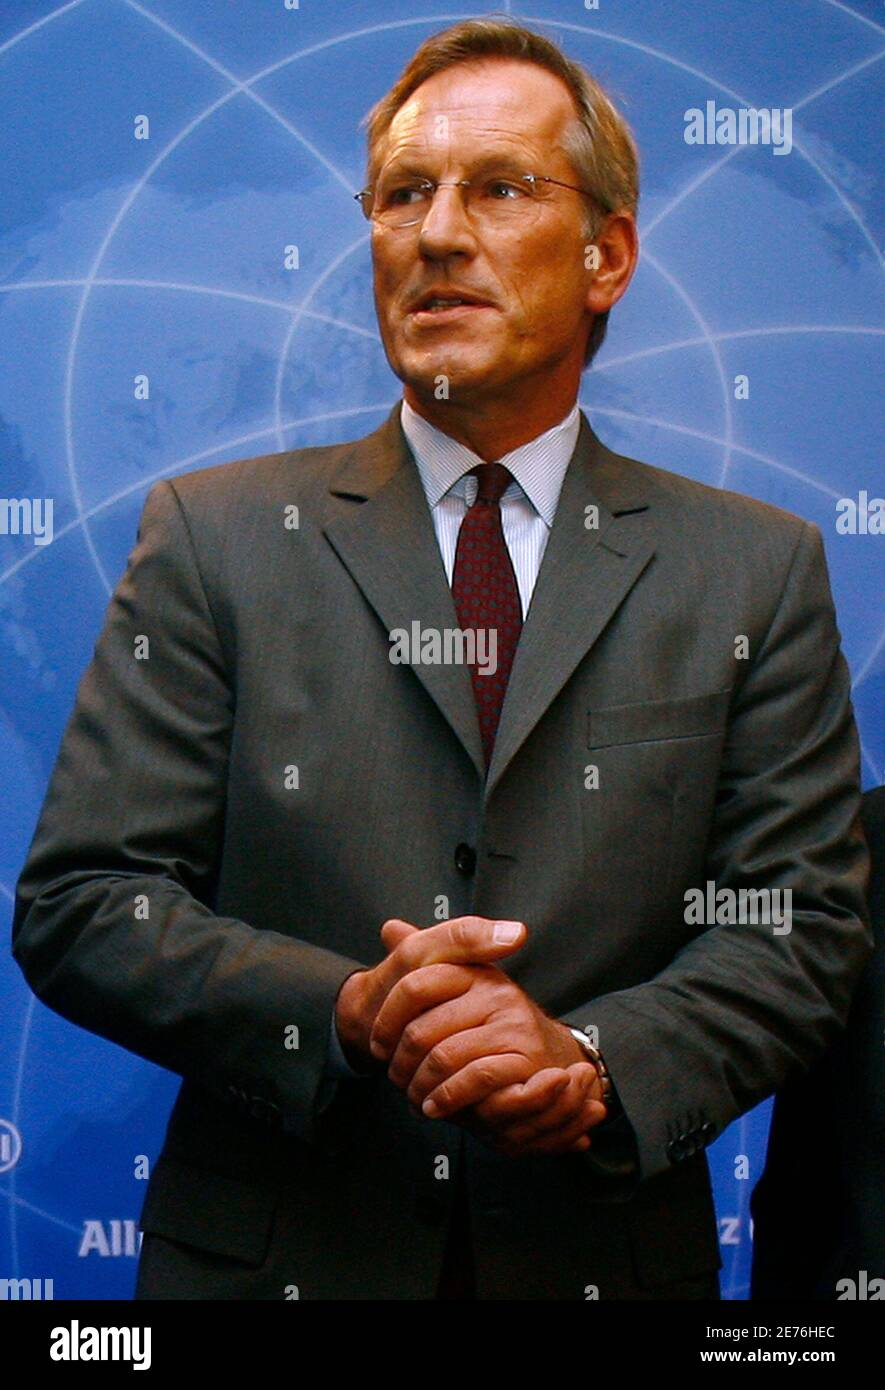 Michael Diekmann, CEO of Europe's biggest insurer Allianz SE, arrives for the company's annual news conference in Munich, February 26, 2009.   REUTERS/Alexandra Beier (GERMANY) Stock Photo